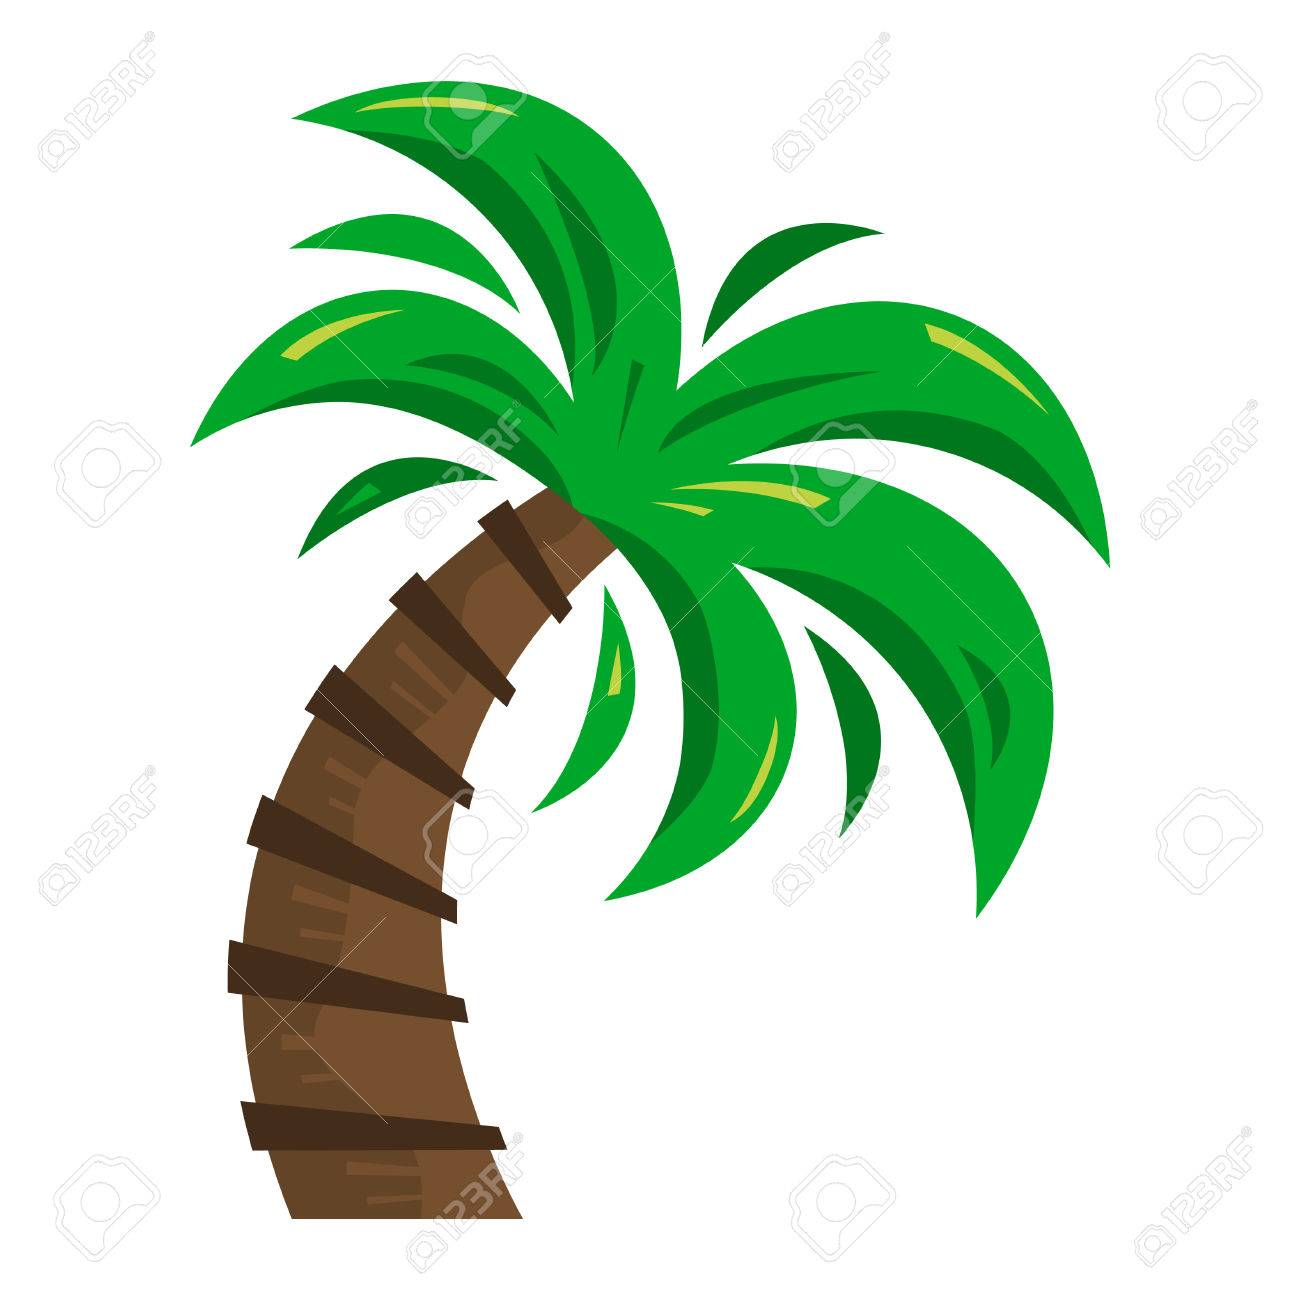 palm tree vector icon royalty free cliparts vectors and stock rh 123rf com free vector palm tree silhouette free vector palm tree artwork